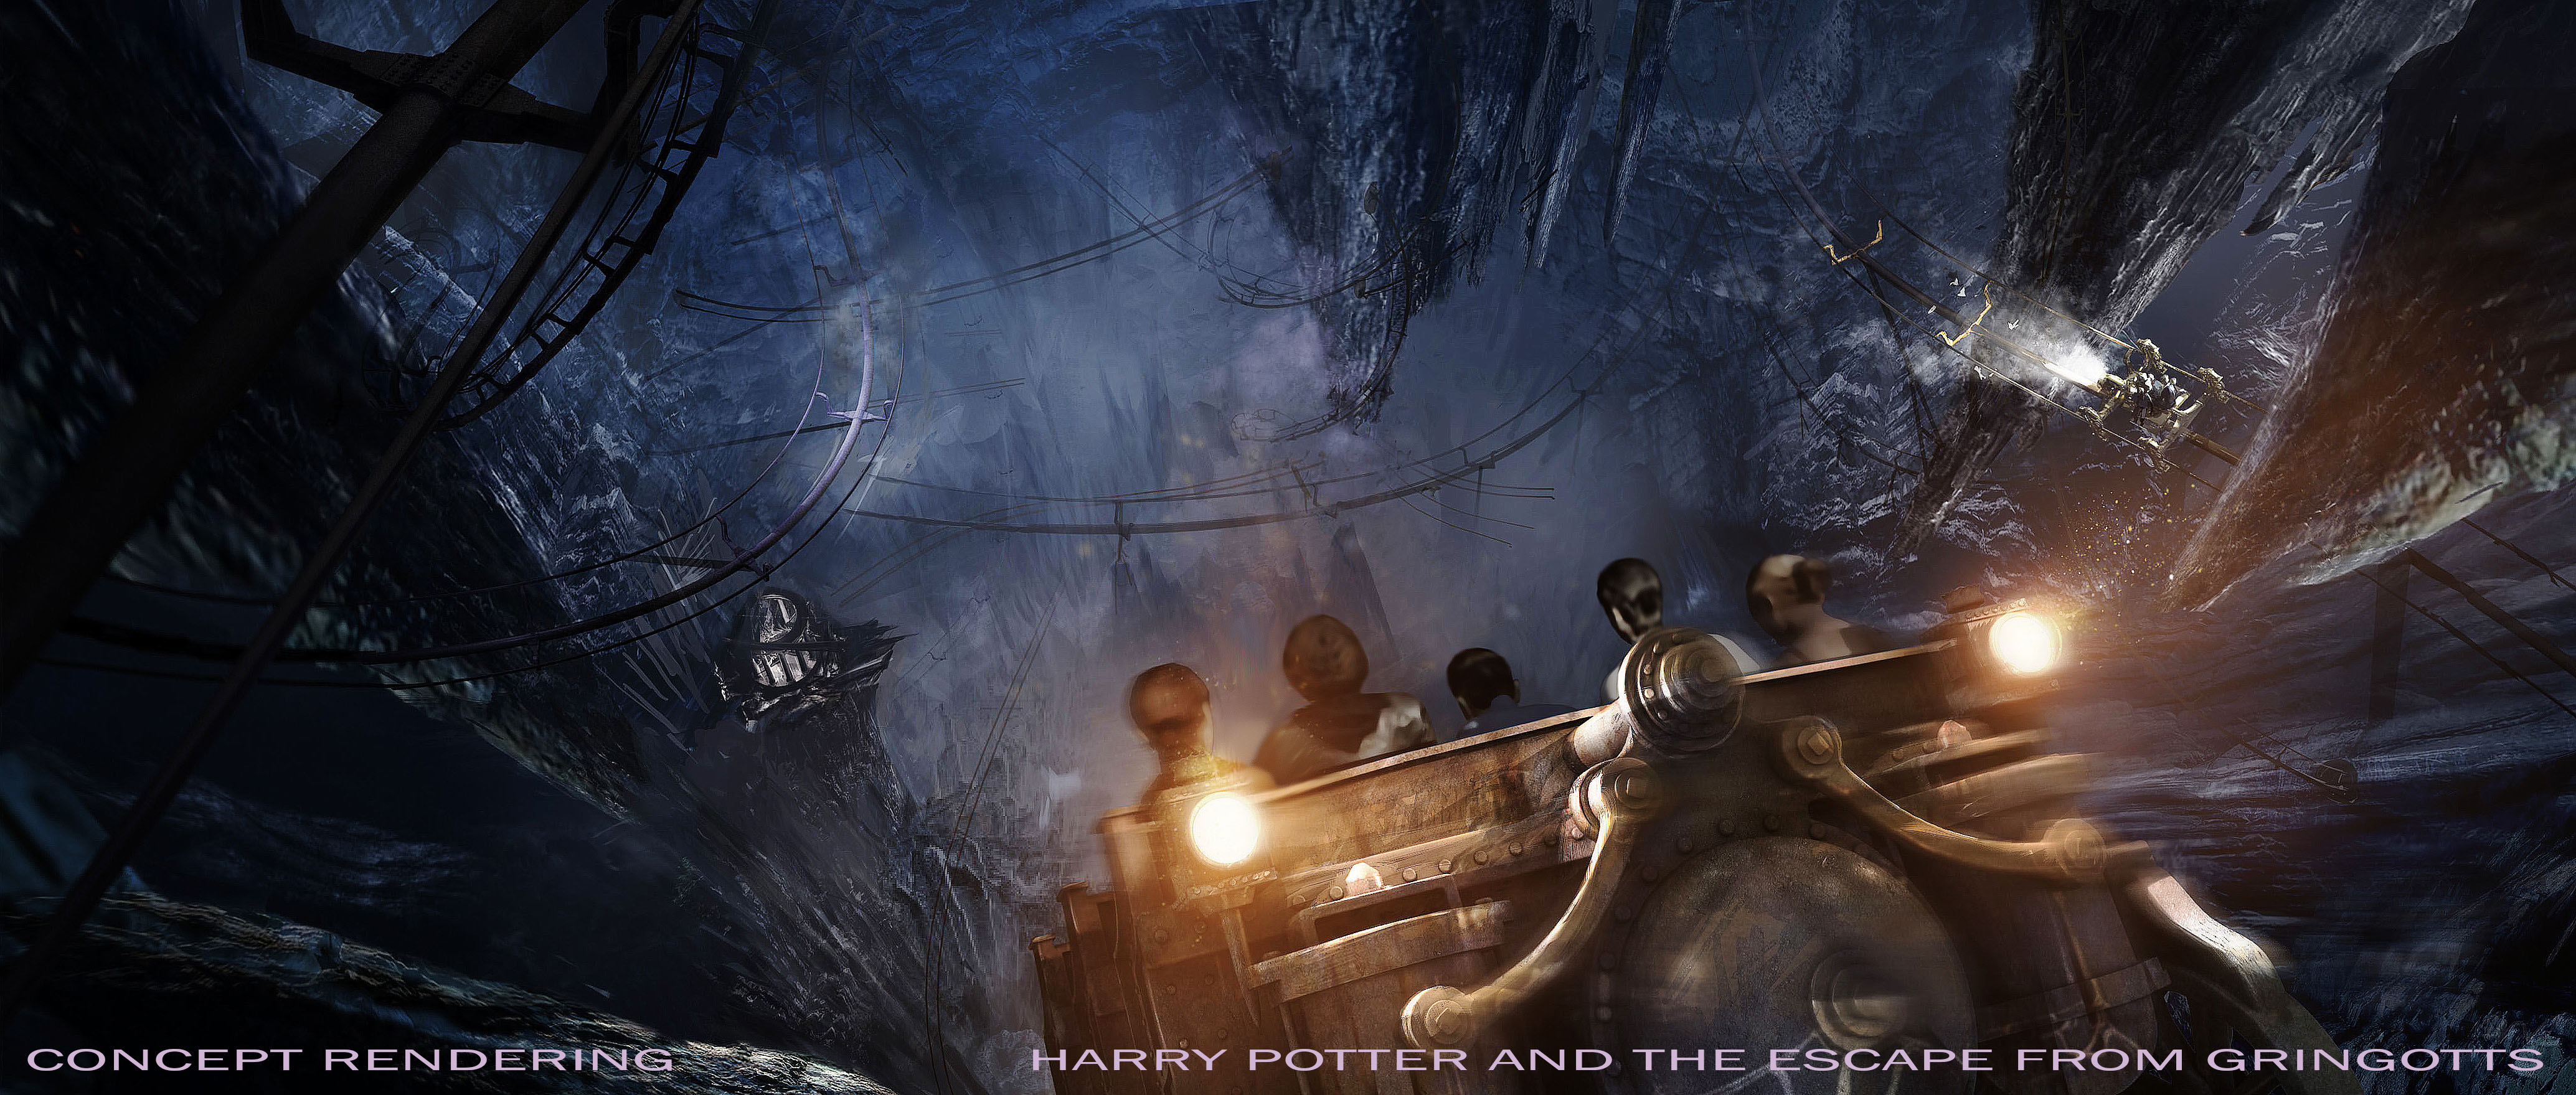 Resources Digitalassets Harry Potter And The Escape From Gringotts